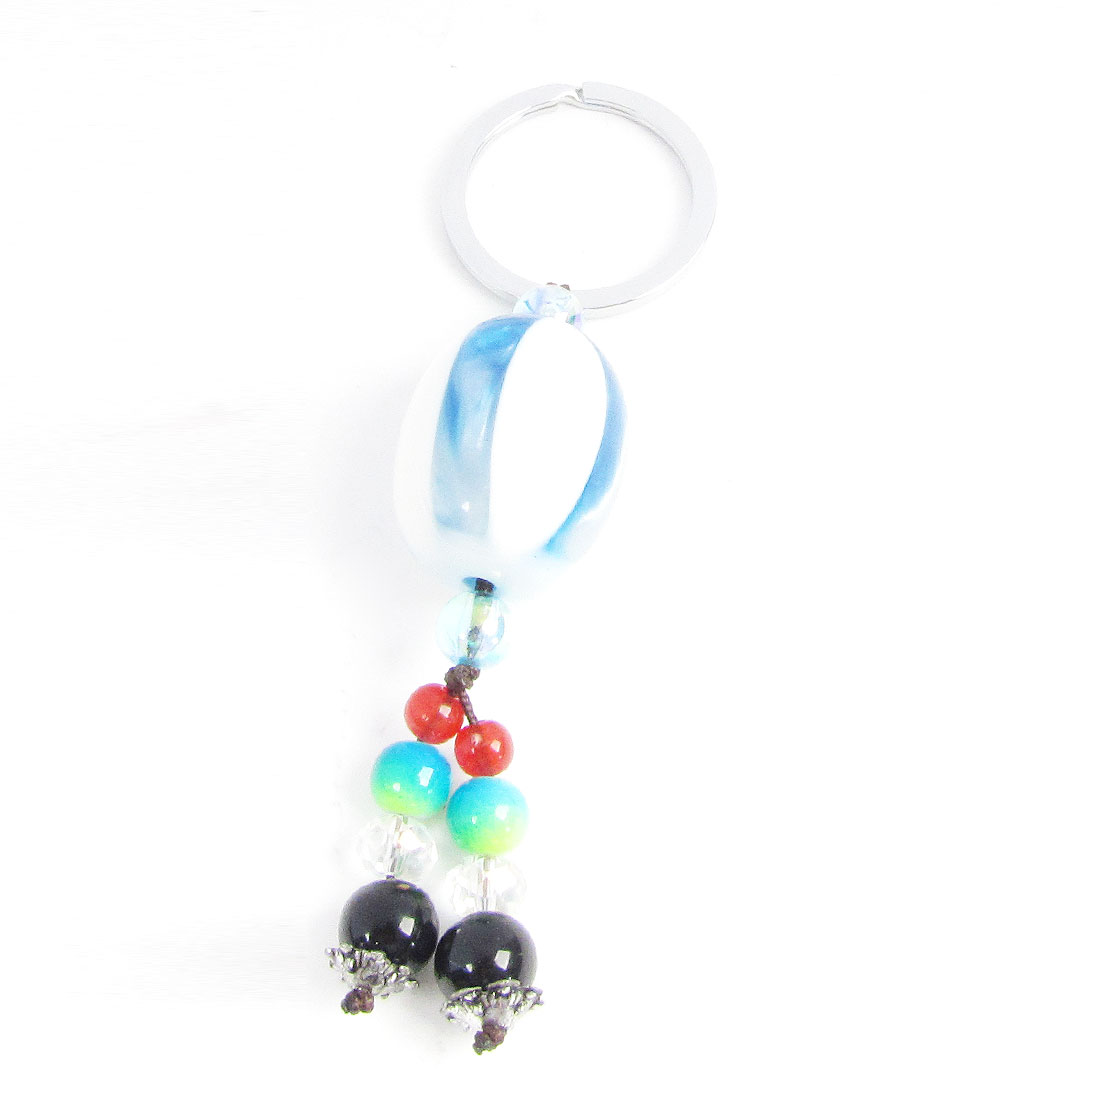 Black Beads Blue White Oval Faux Jade Pendant Keys Ring Keyring Keychain